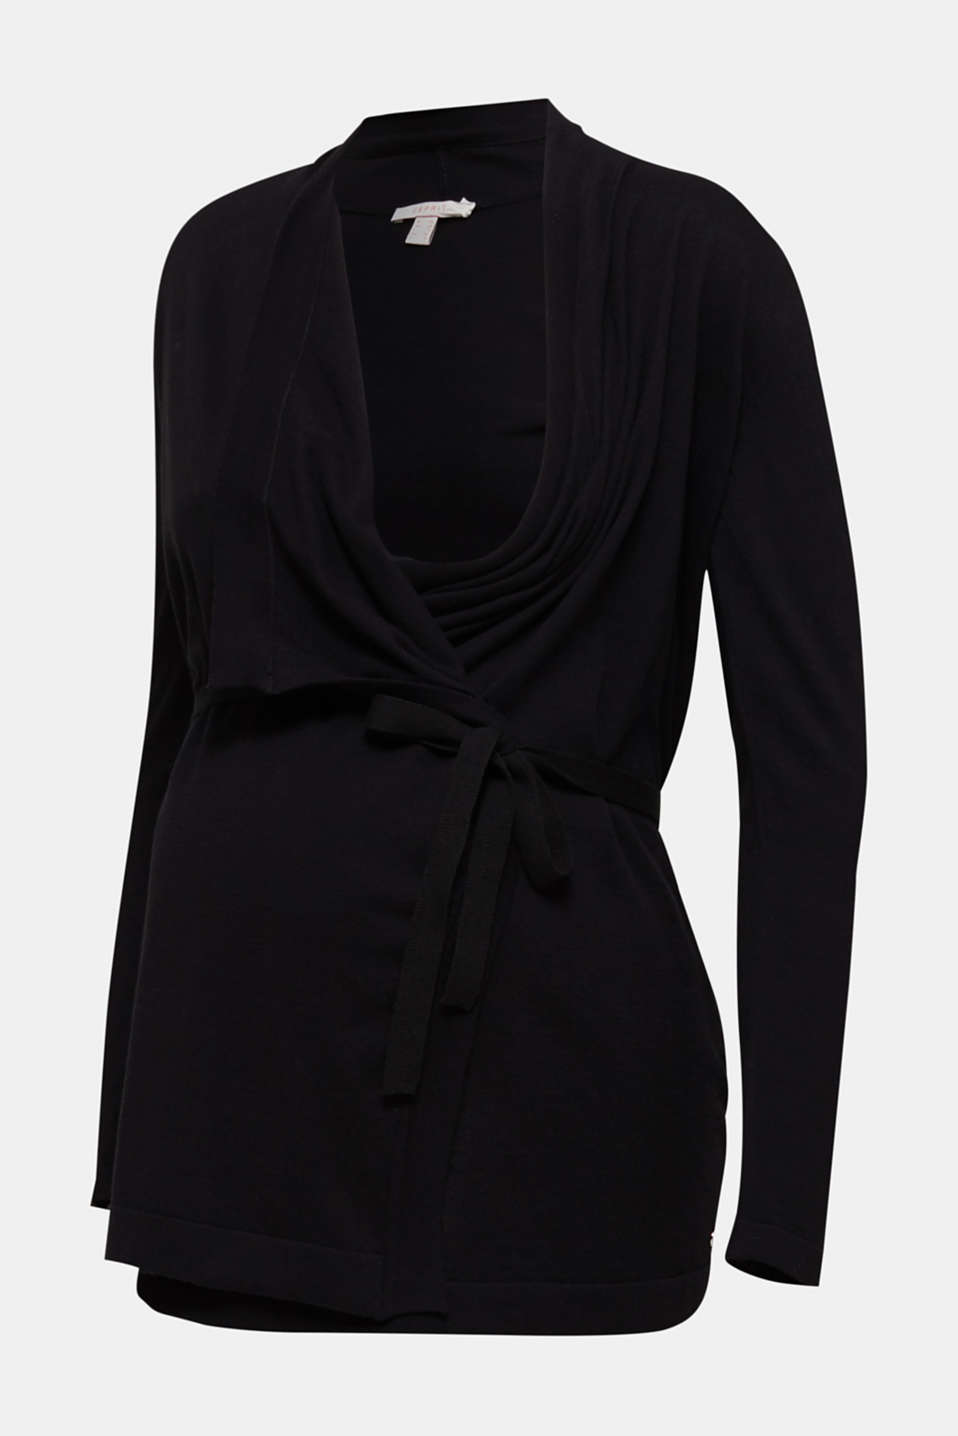 Cardigan with a tie-around belt, 100% cotton, LCBLACK, detail image number 5